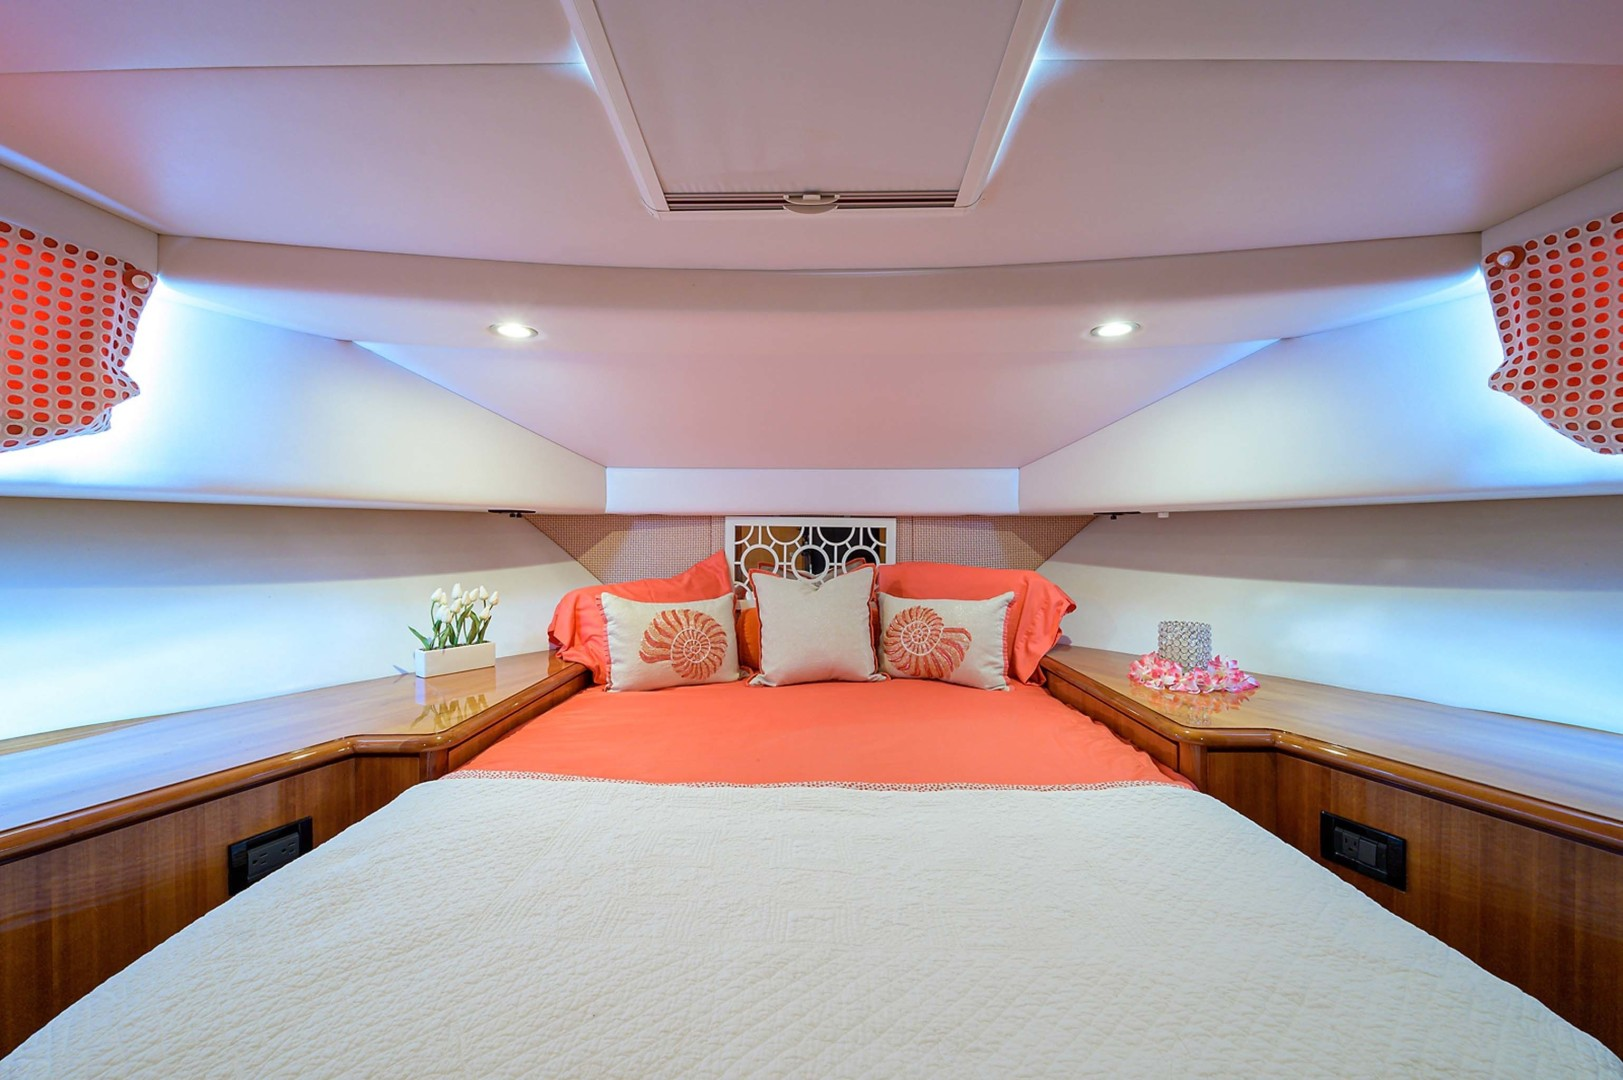 Queenship-Pilothouse Motor Yacht 1996-UNBRIDLED Stuart-Florida-United States-Ample Lighting Throughout and Bomar hatch with Shade-1383304 | Thumbnail